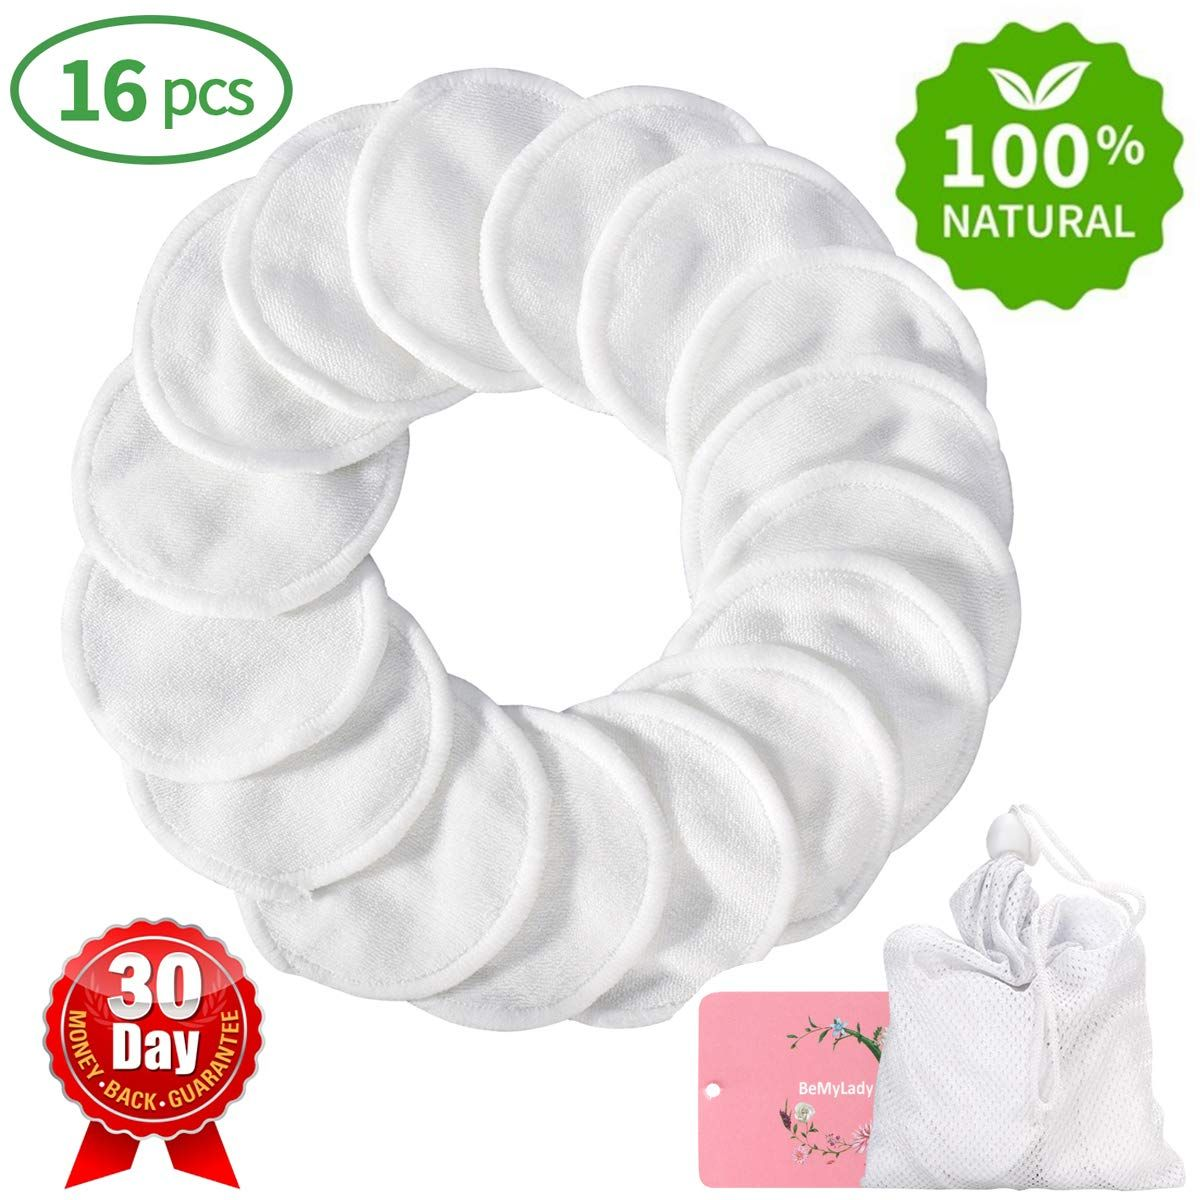 Reusable Makeup Remover Pads 16 Packs, TOPOINT